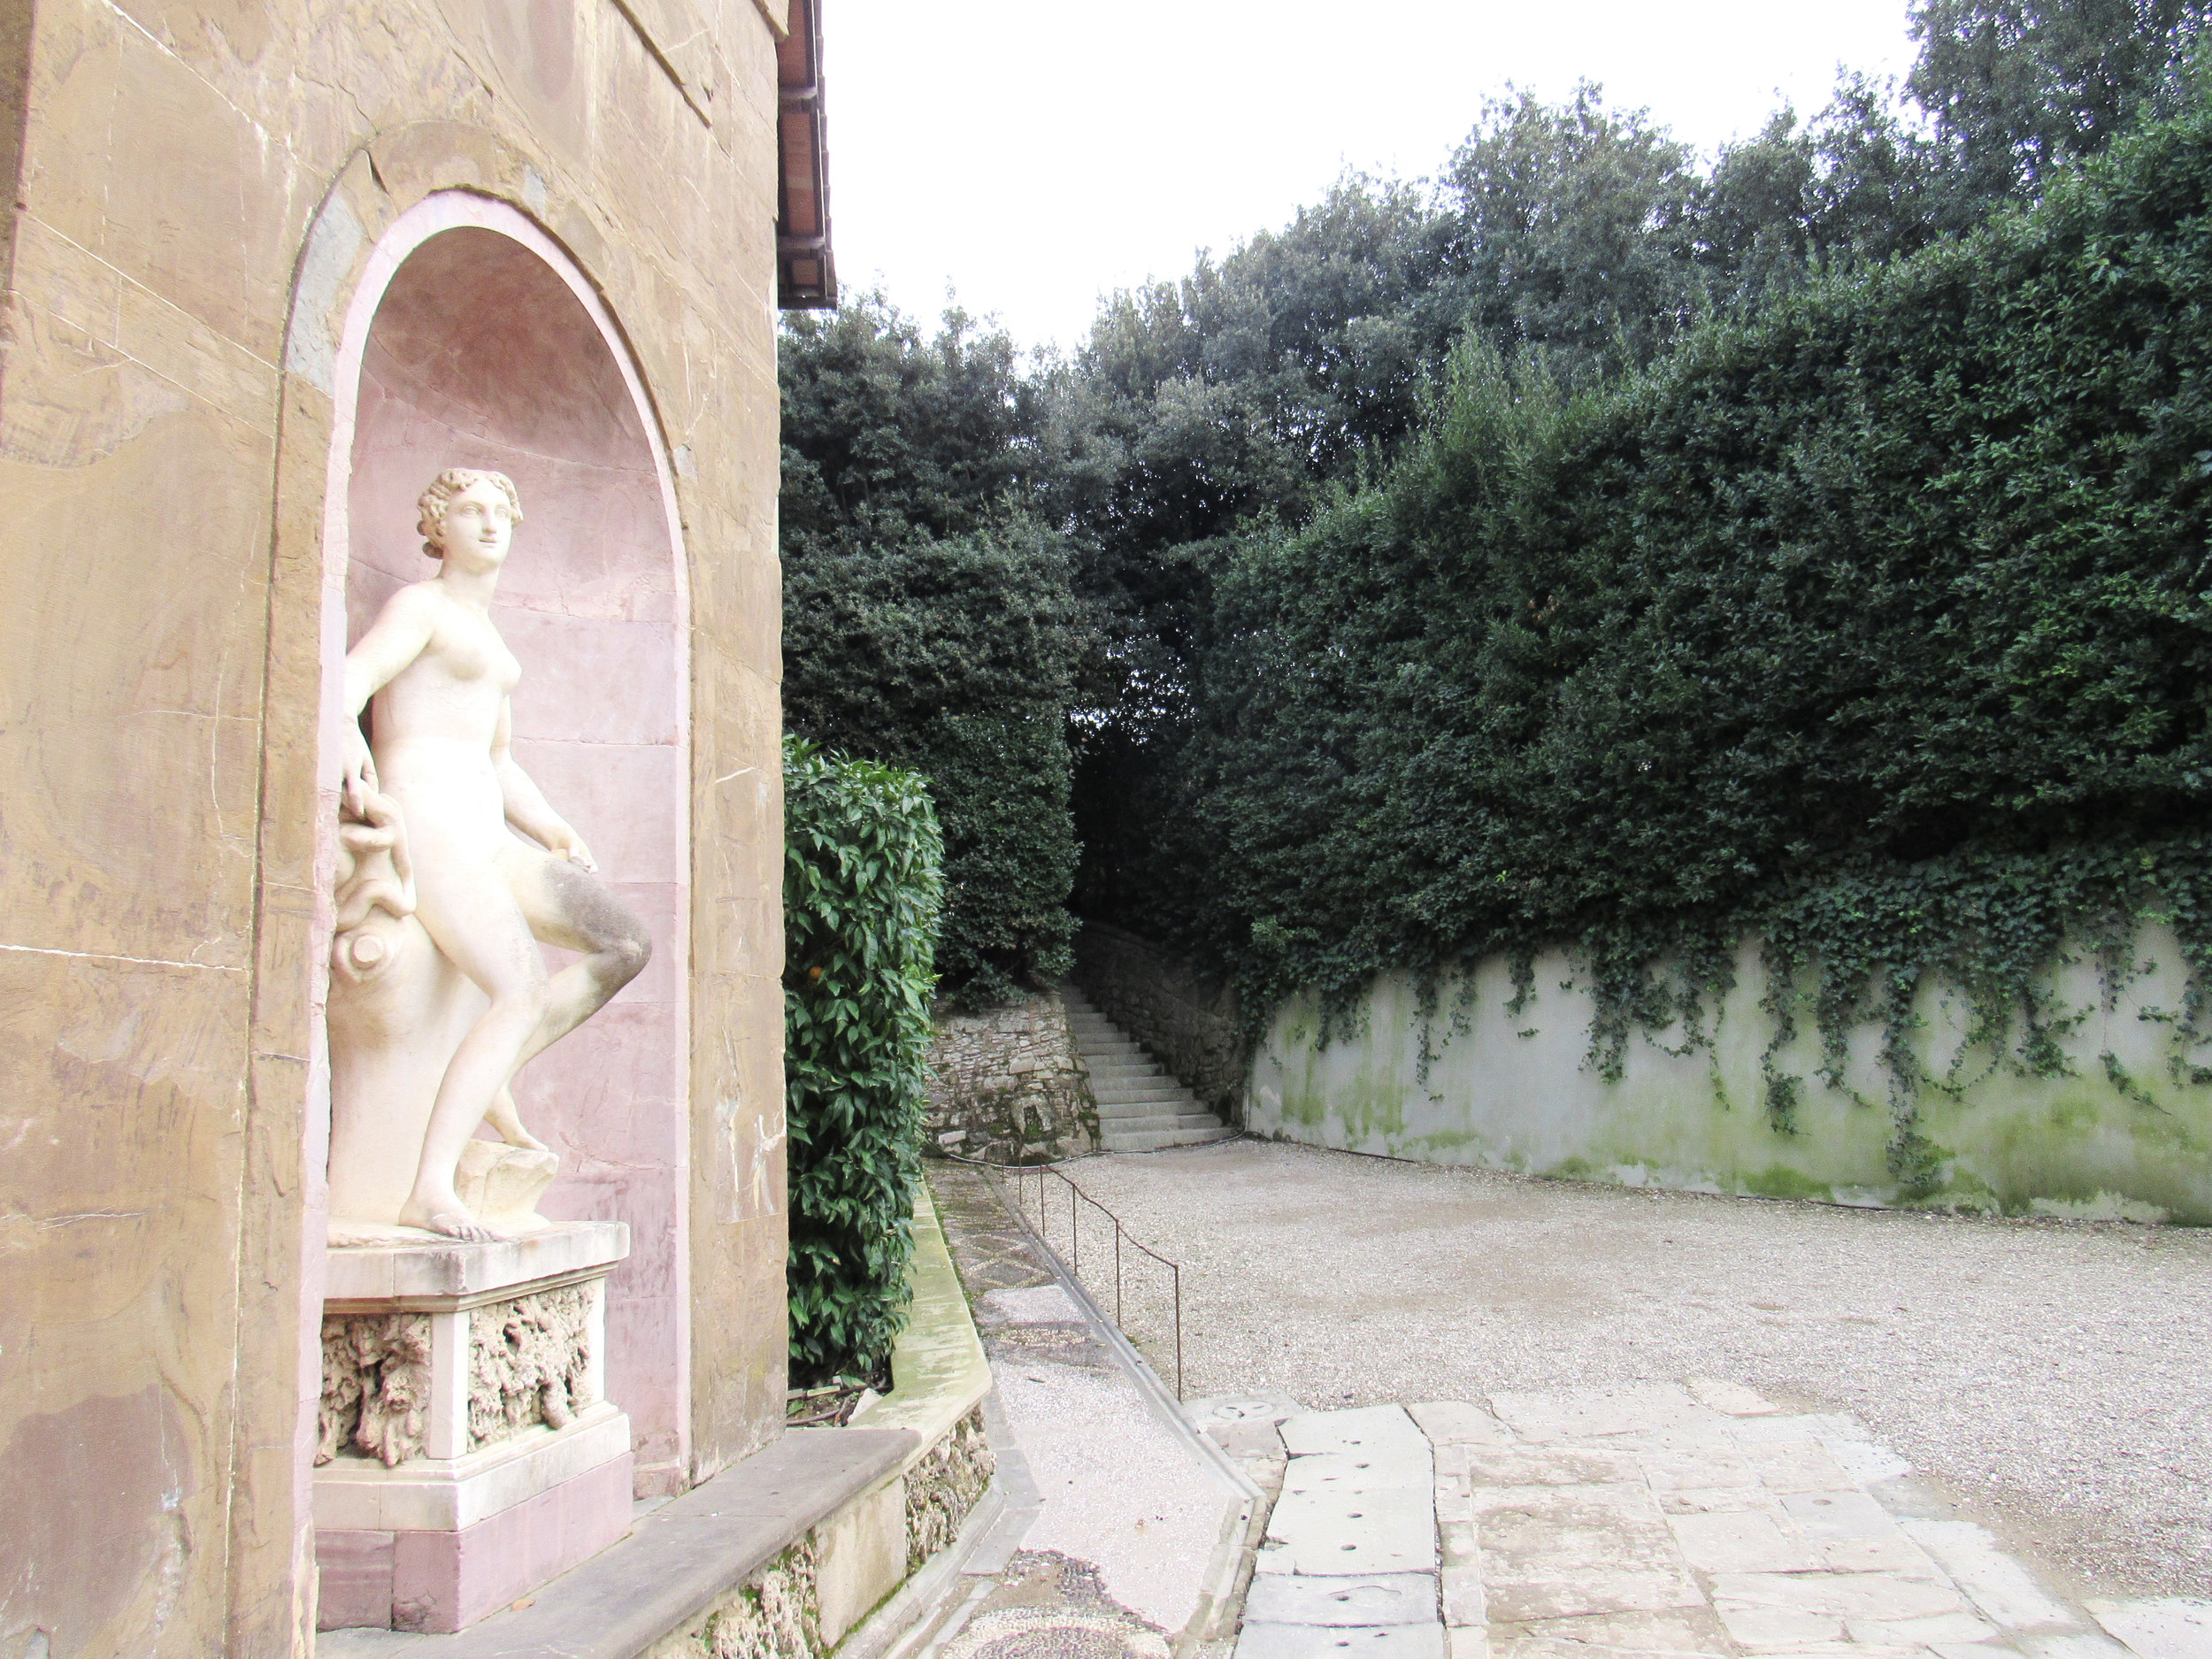 Located behind Palazzo Pitti (which belonged to Florence's leading family, the Medici) are the Boboli Gardens. They are an exquisite example of Italian style gardens, and are home to magnificent grottos, fountains, and Renaissance statues. Photo credit: Maggie Johnson